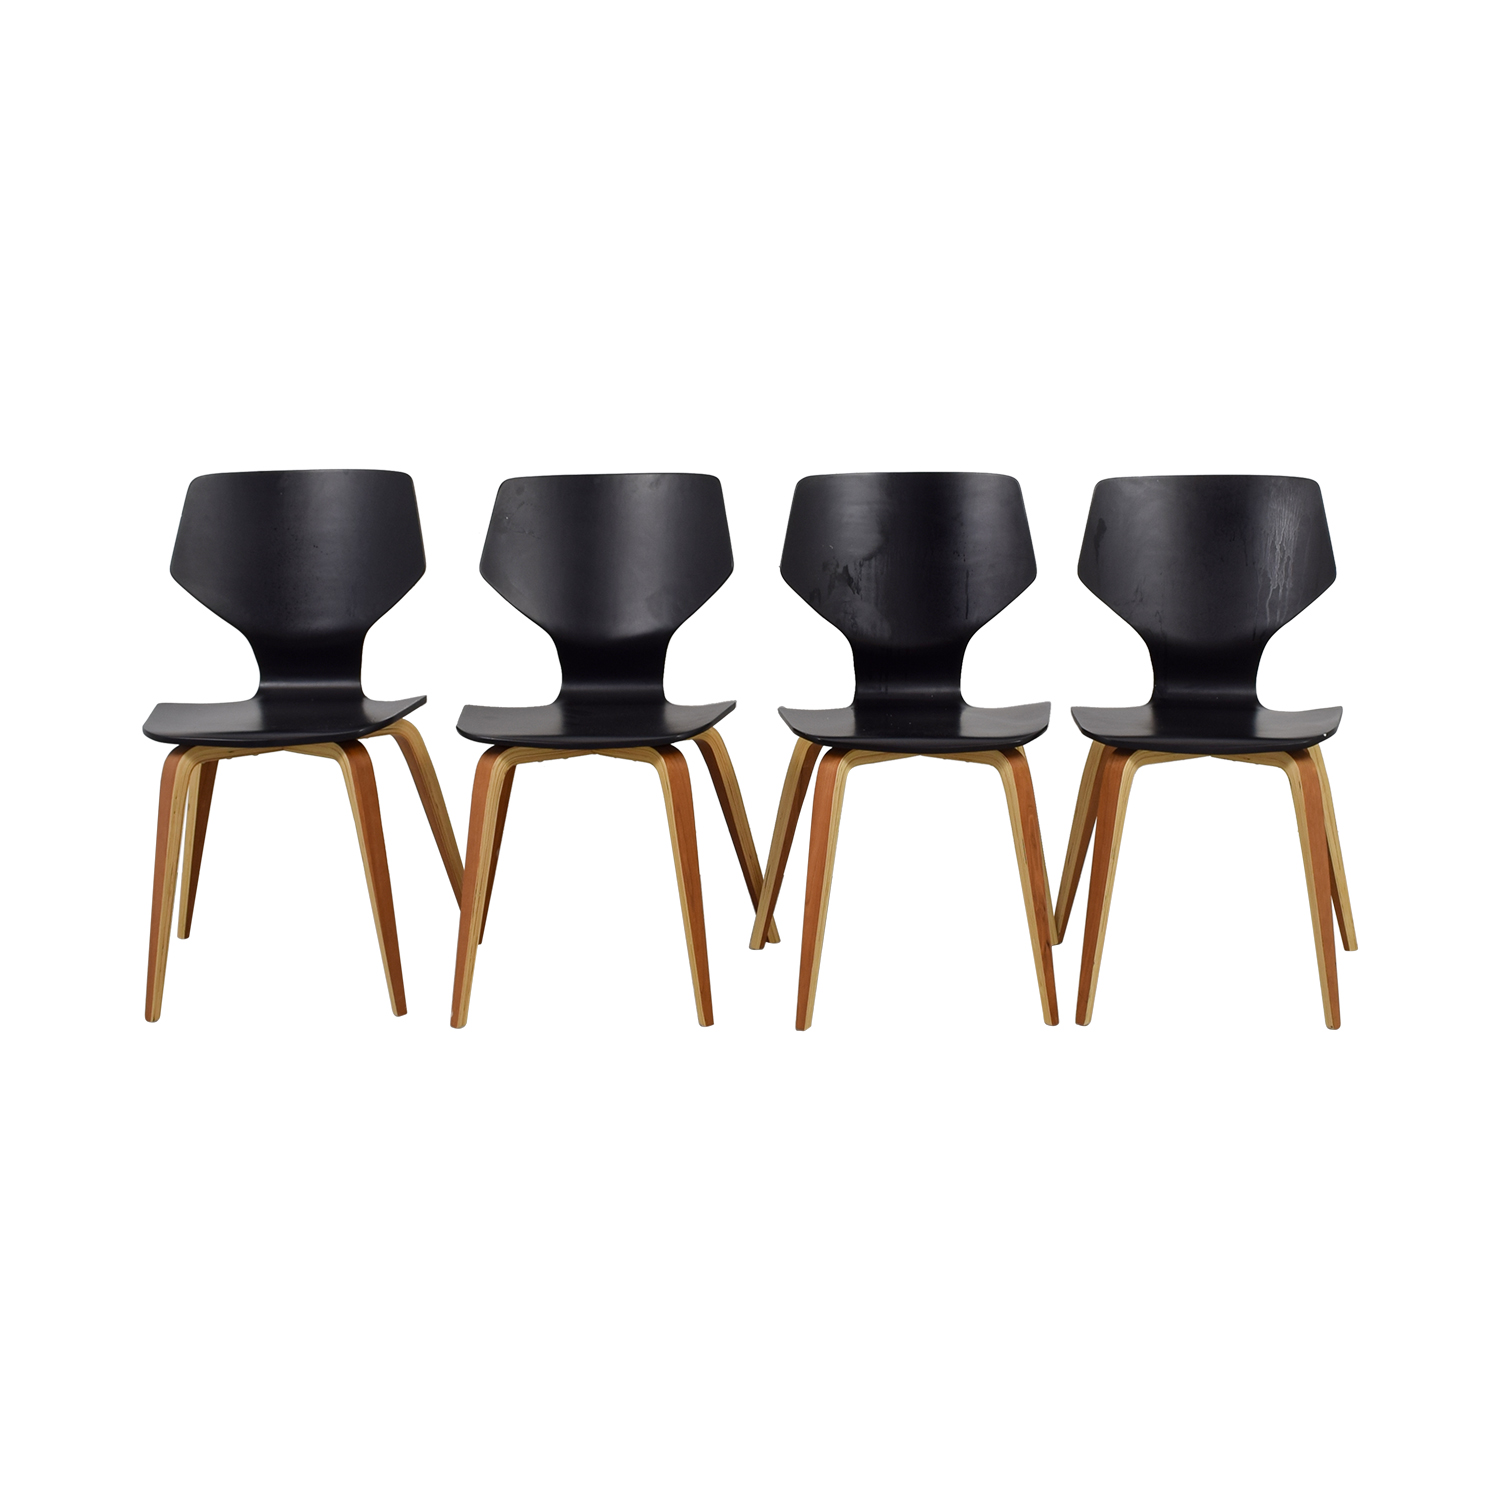 Room & Board Room & Board Pike Side Chairs with Wood Base coupon